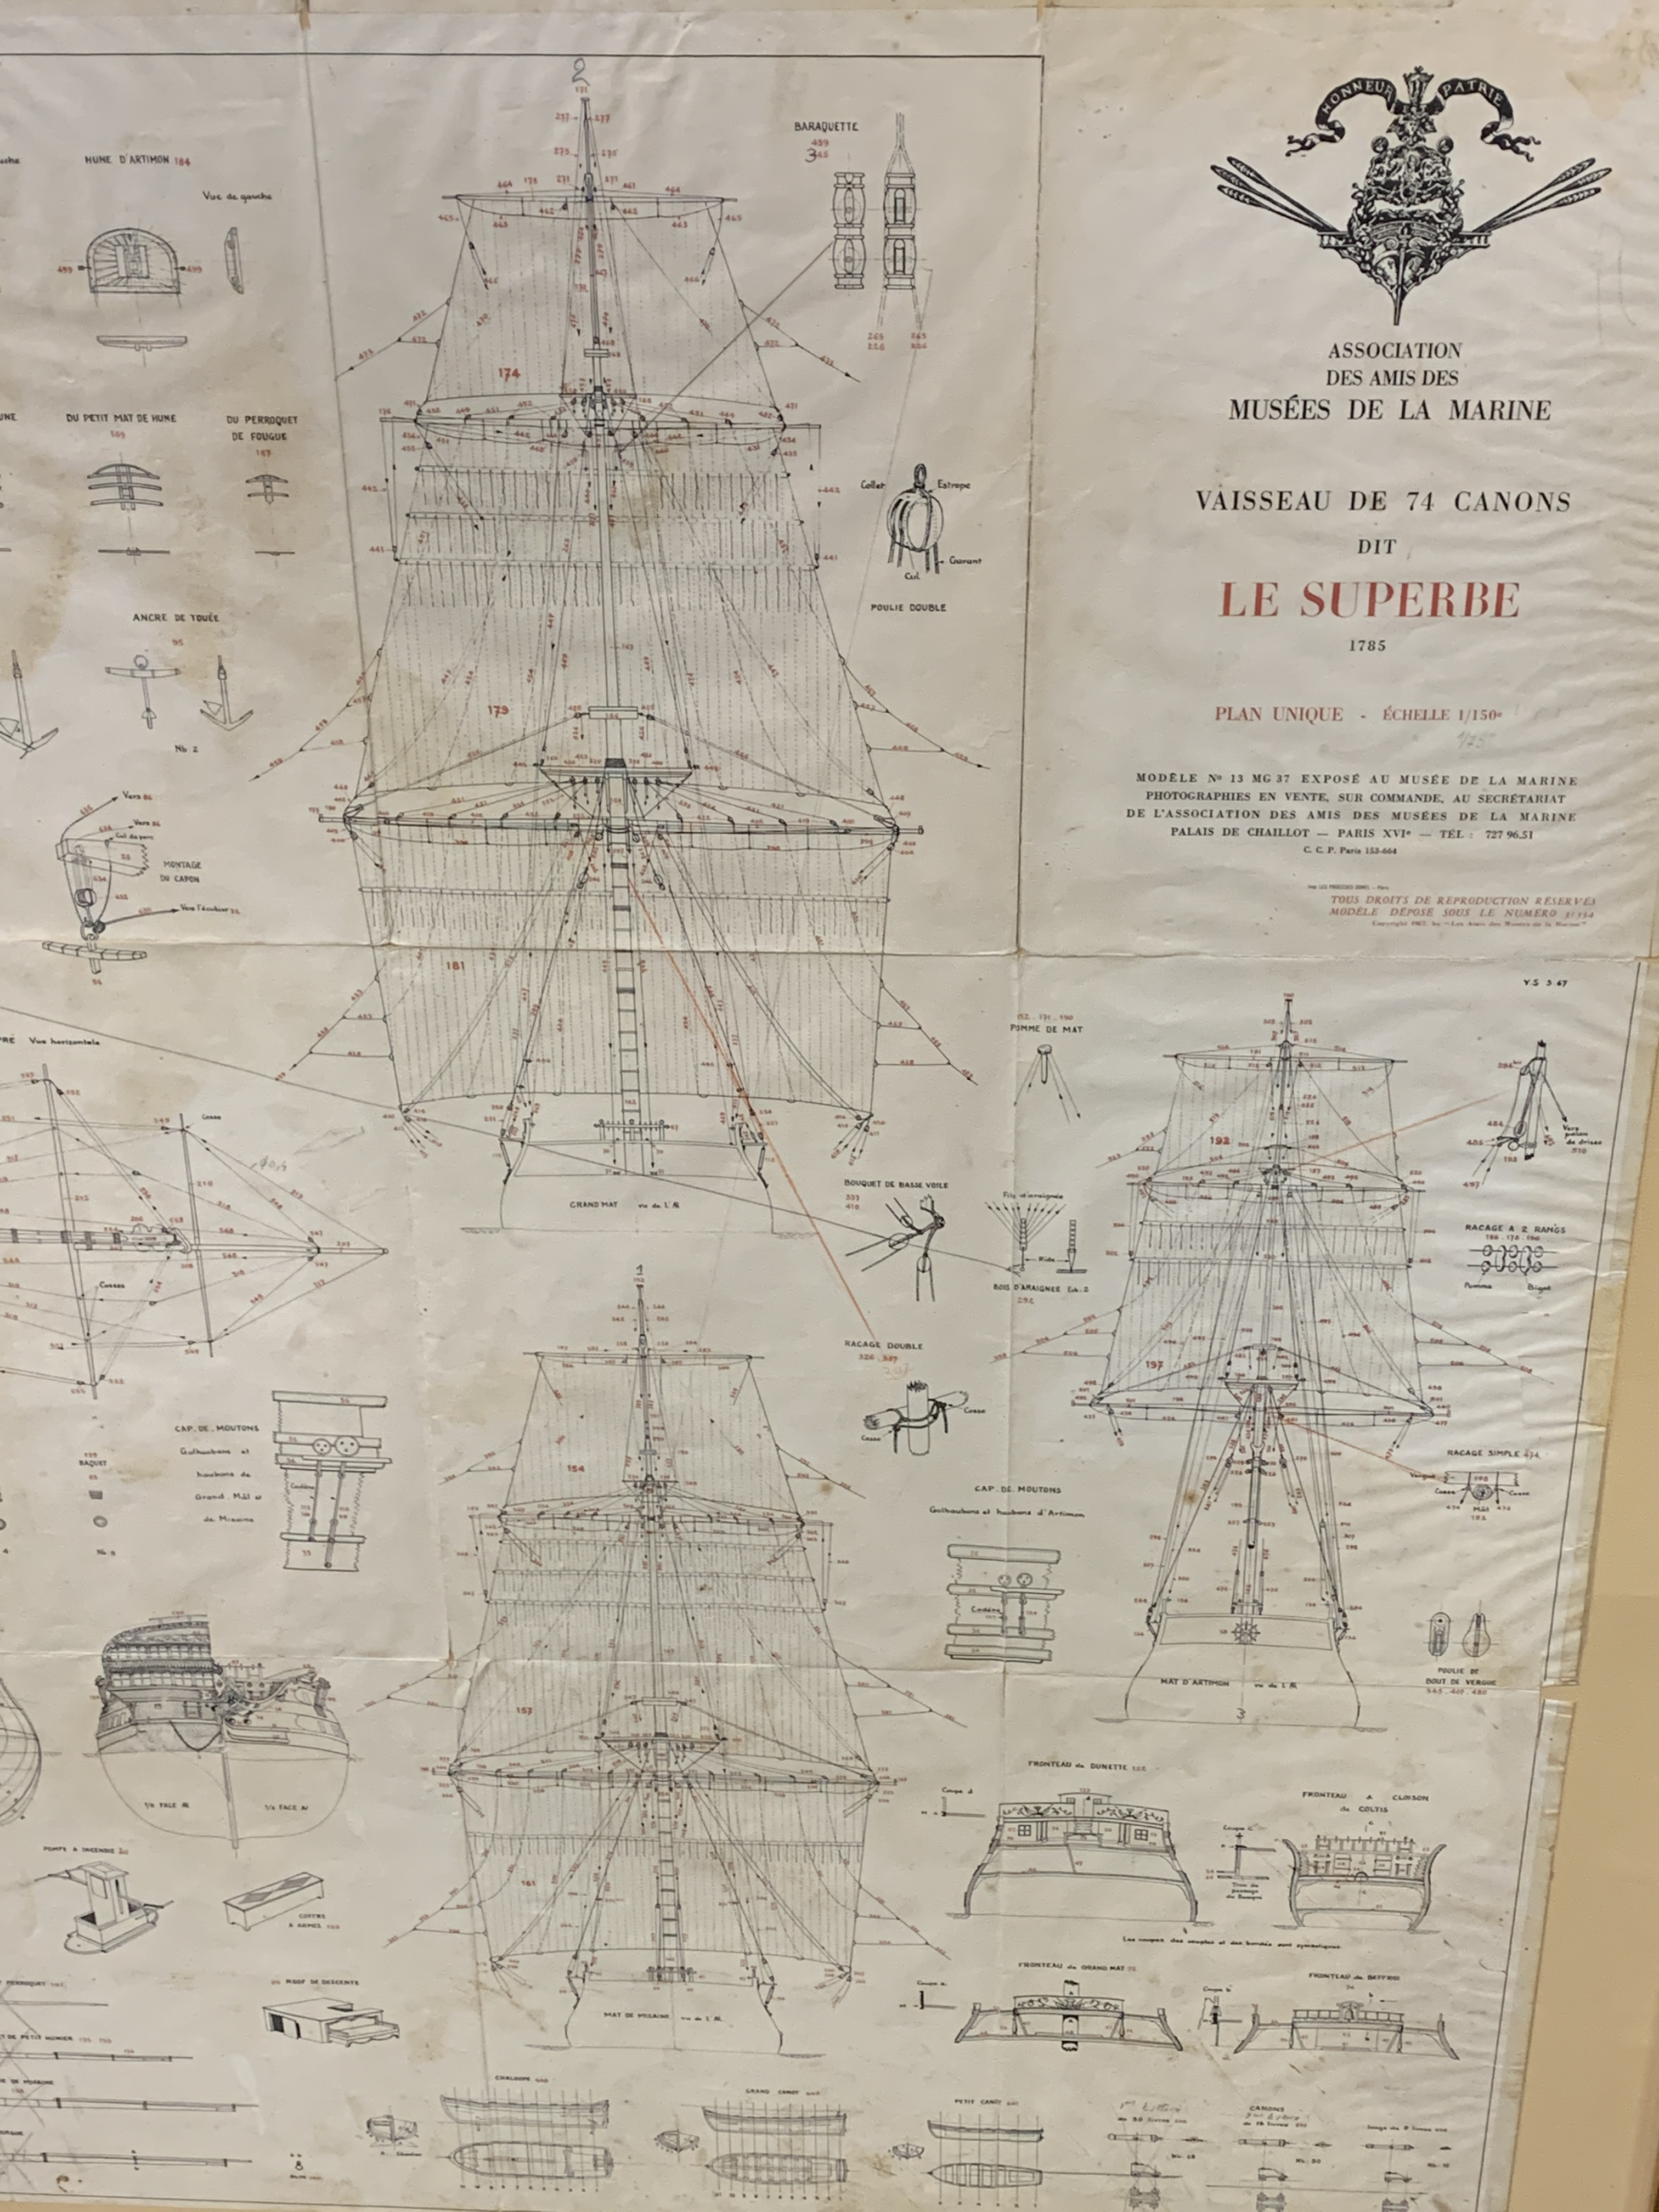 A Musee de La Marie, 1/150 scale plan of the 74 gun warship Le Superbe - Image 4 of 5